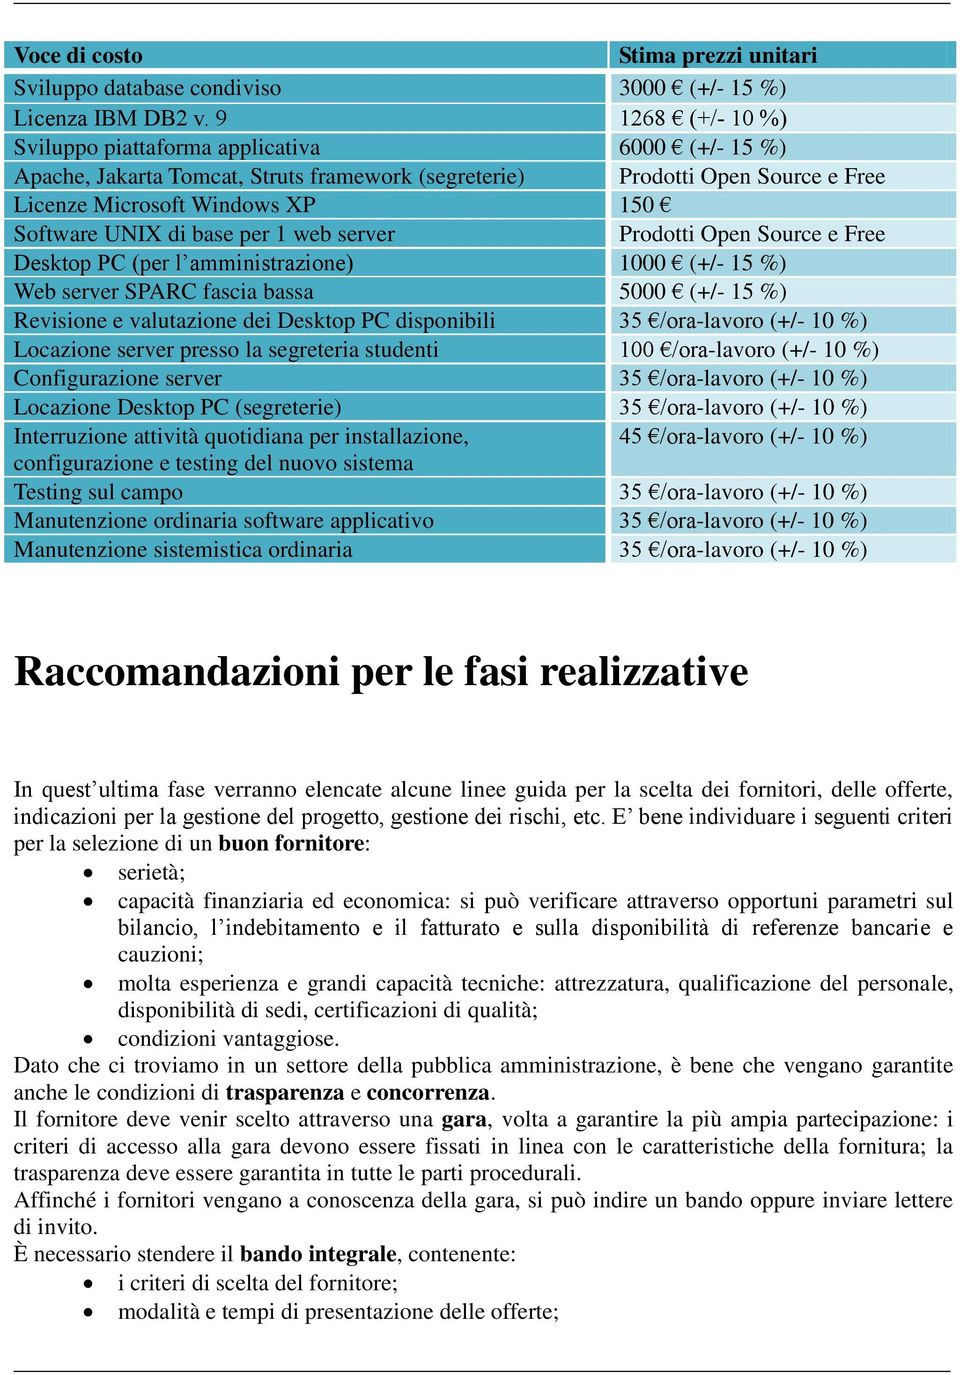 base per 1 web server Prodotti Open Source e Free Desktop PC (per l amministrazione) 1000 (+/- 15 %) Web server SPARC fascia bassa 5000 (+/- 15 %) Revisione e valutazione dei Desktop PC disponibili